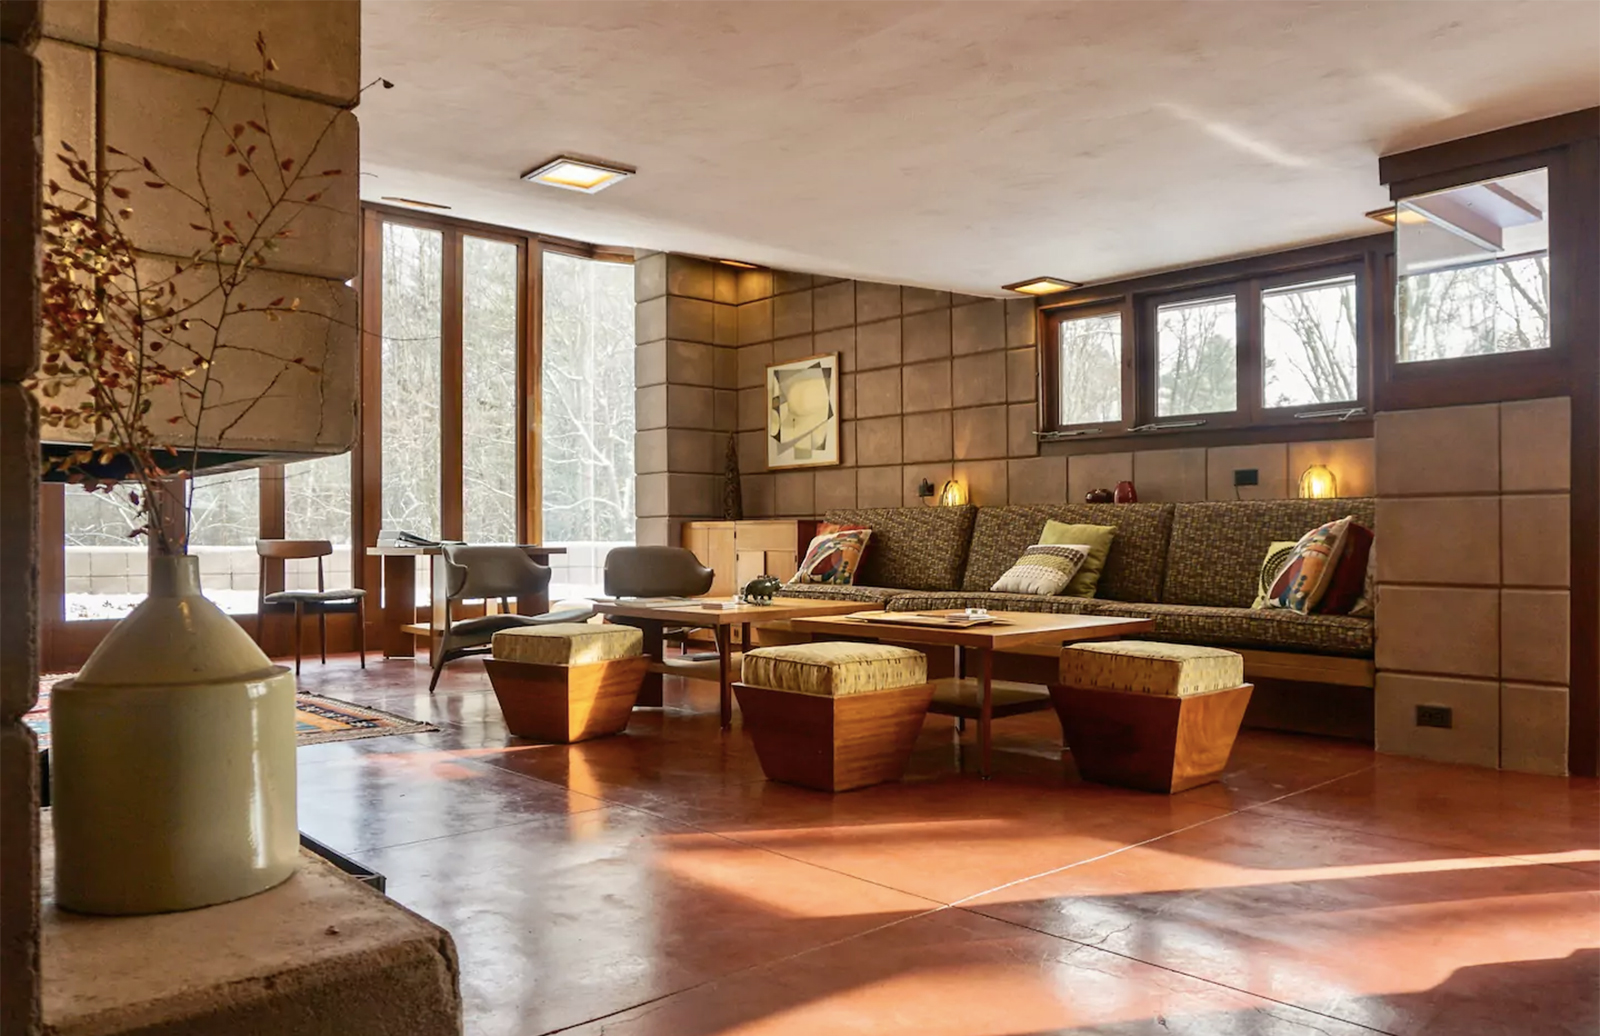 Frank Lloyd Wright's Eppstein house is now for rent in Michigan